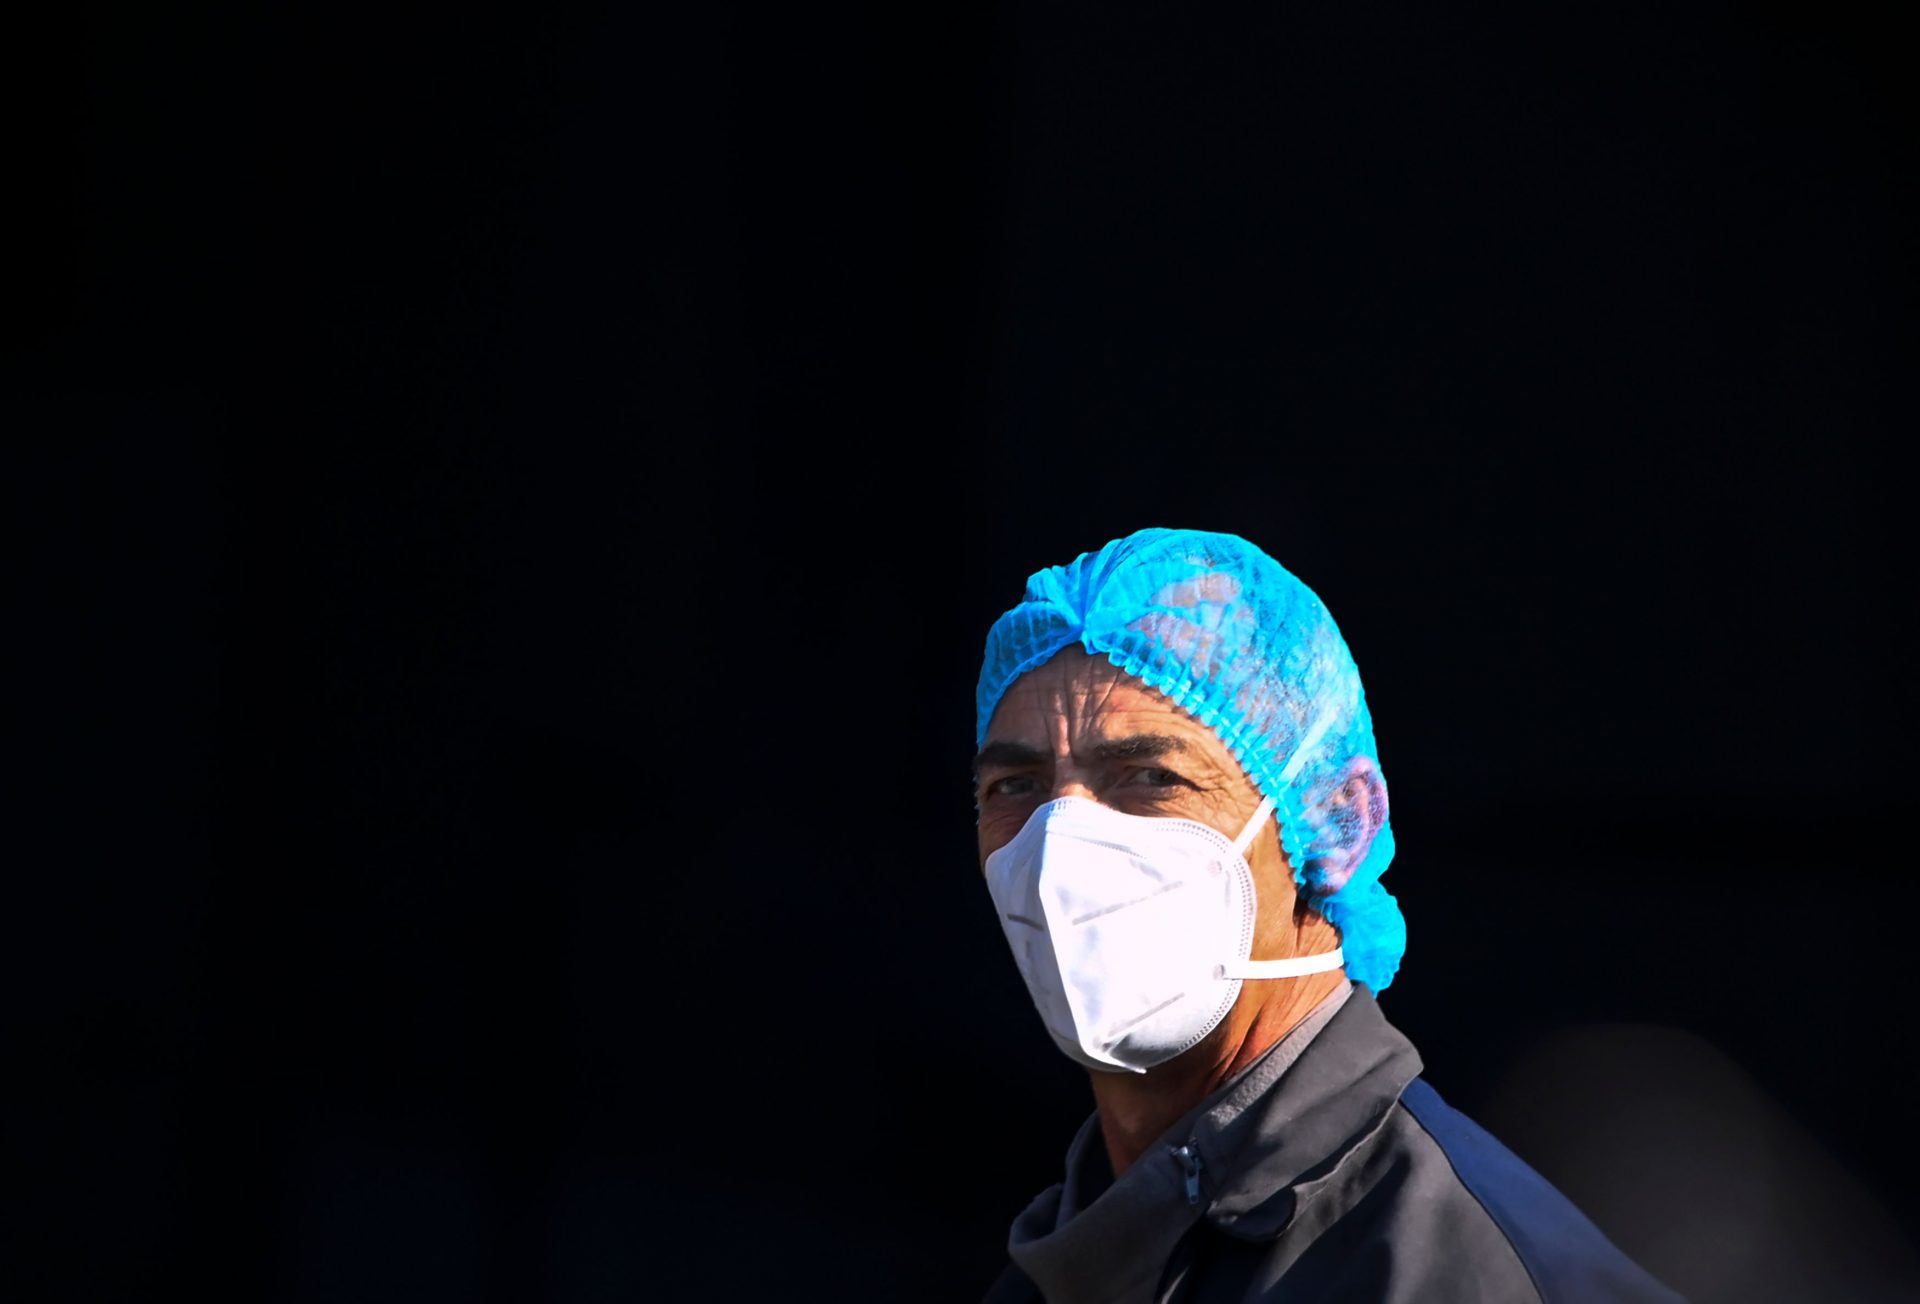 Mandatory Credit: Photo by GEORGI LICOVSKI/EPA-EFE/Shutterstock (11745943a)A woman wearing a protective mask and a hairnet walks in front of the University Clinic for Infectious Diseases in Skopje, Republic of North Macedonia, 04 February 2021.